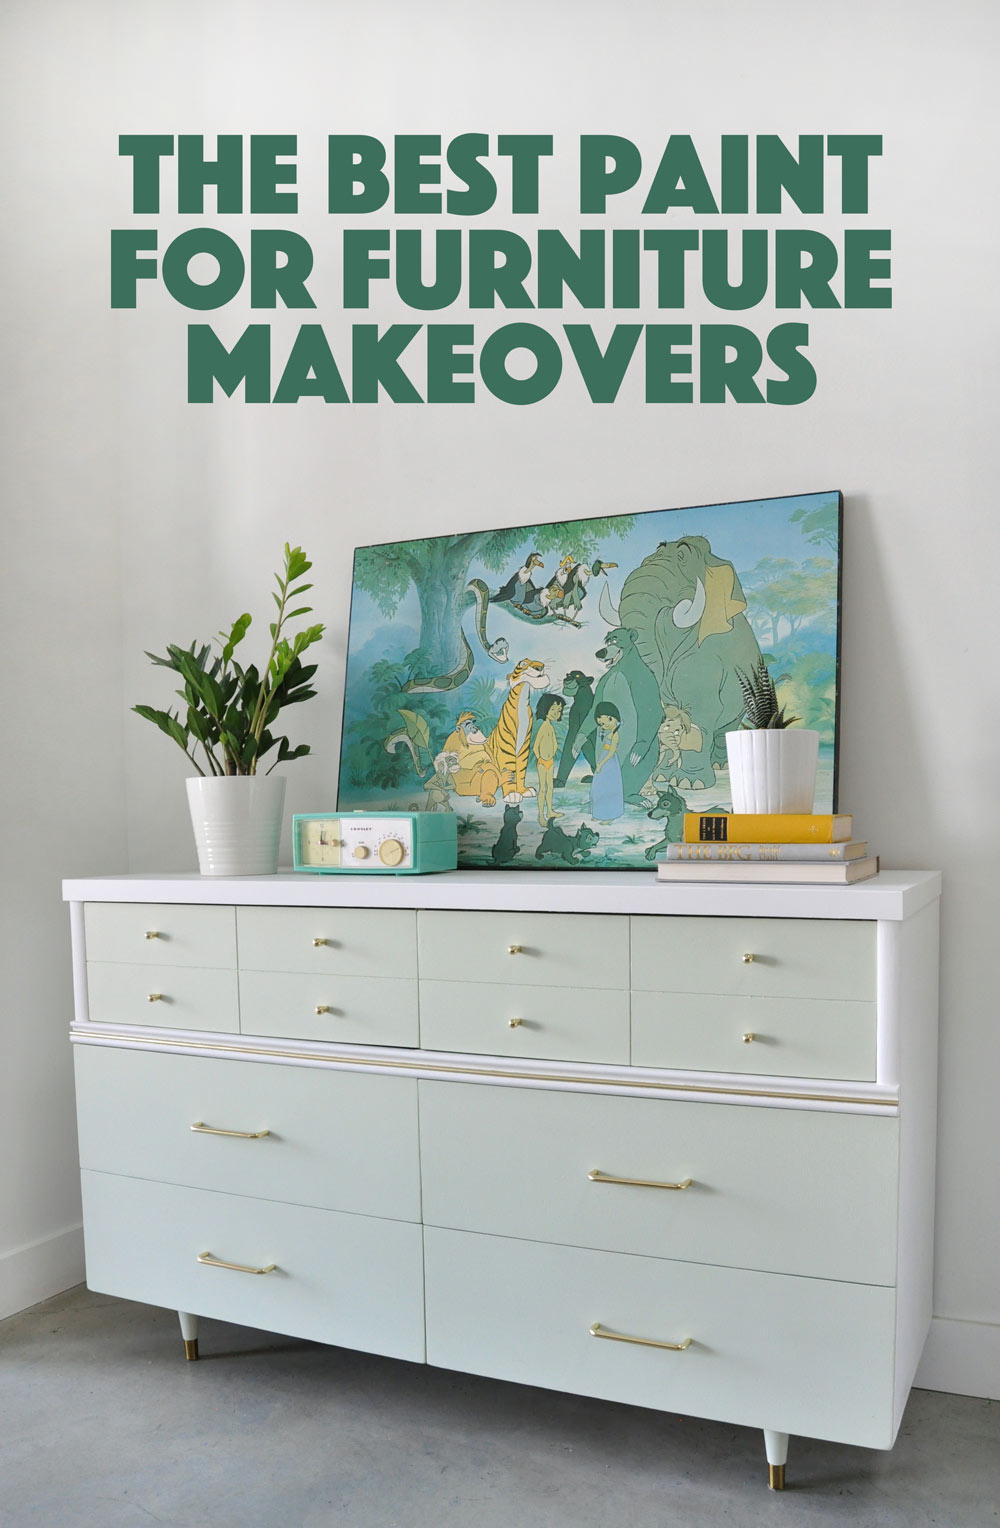 The Best Paint For Furniture Makeovers